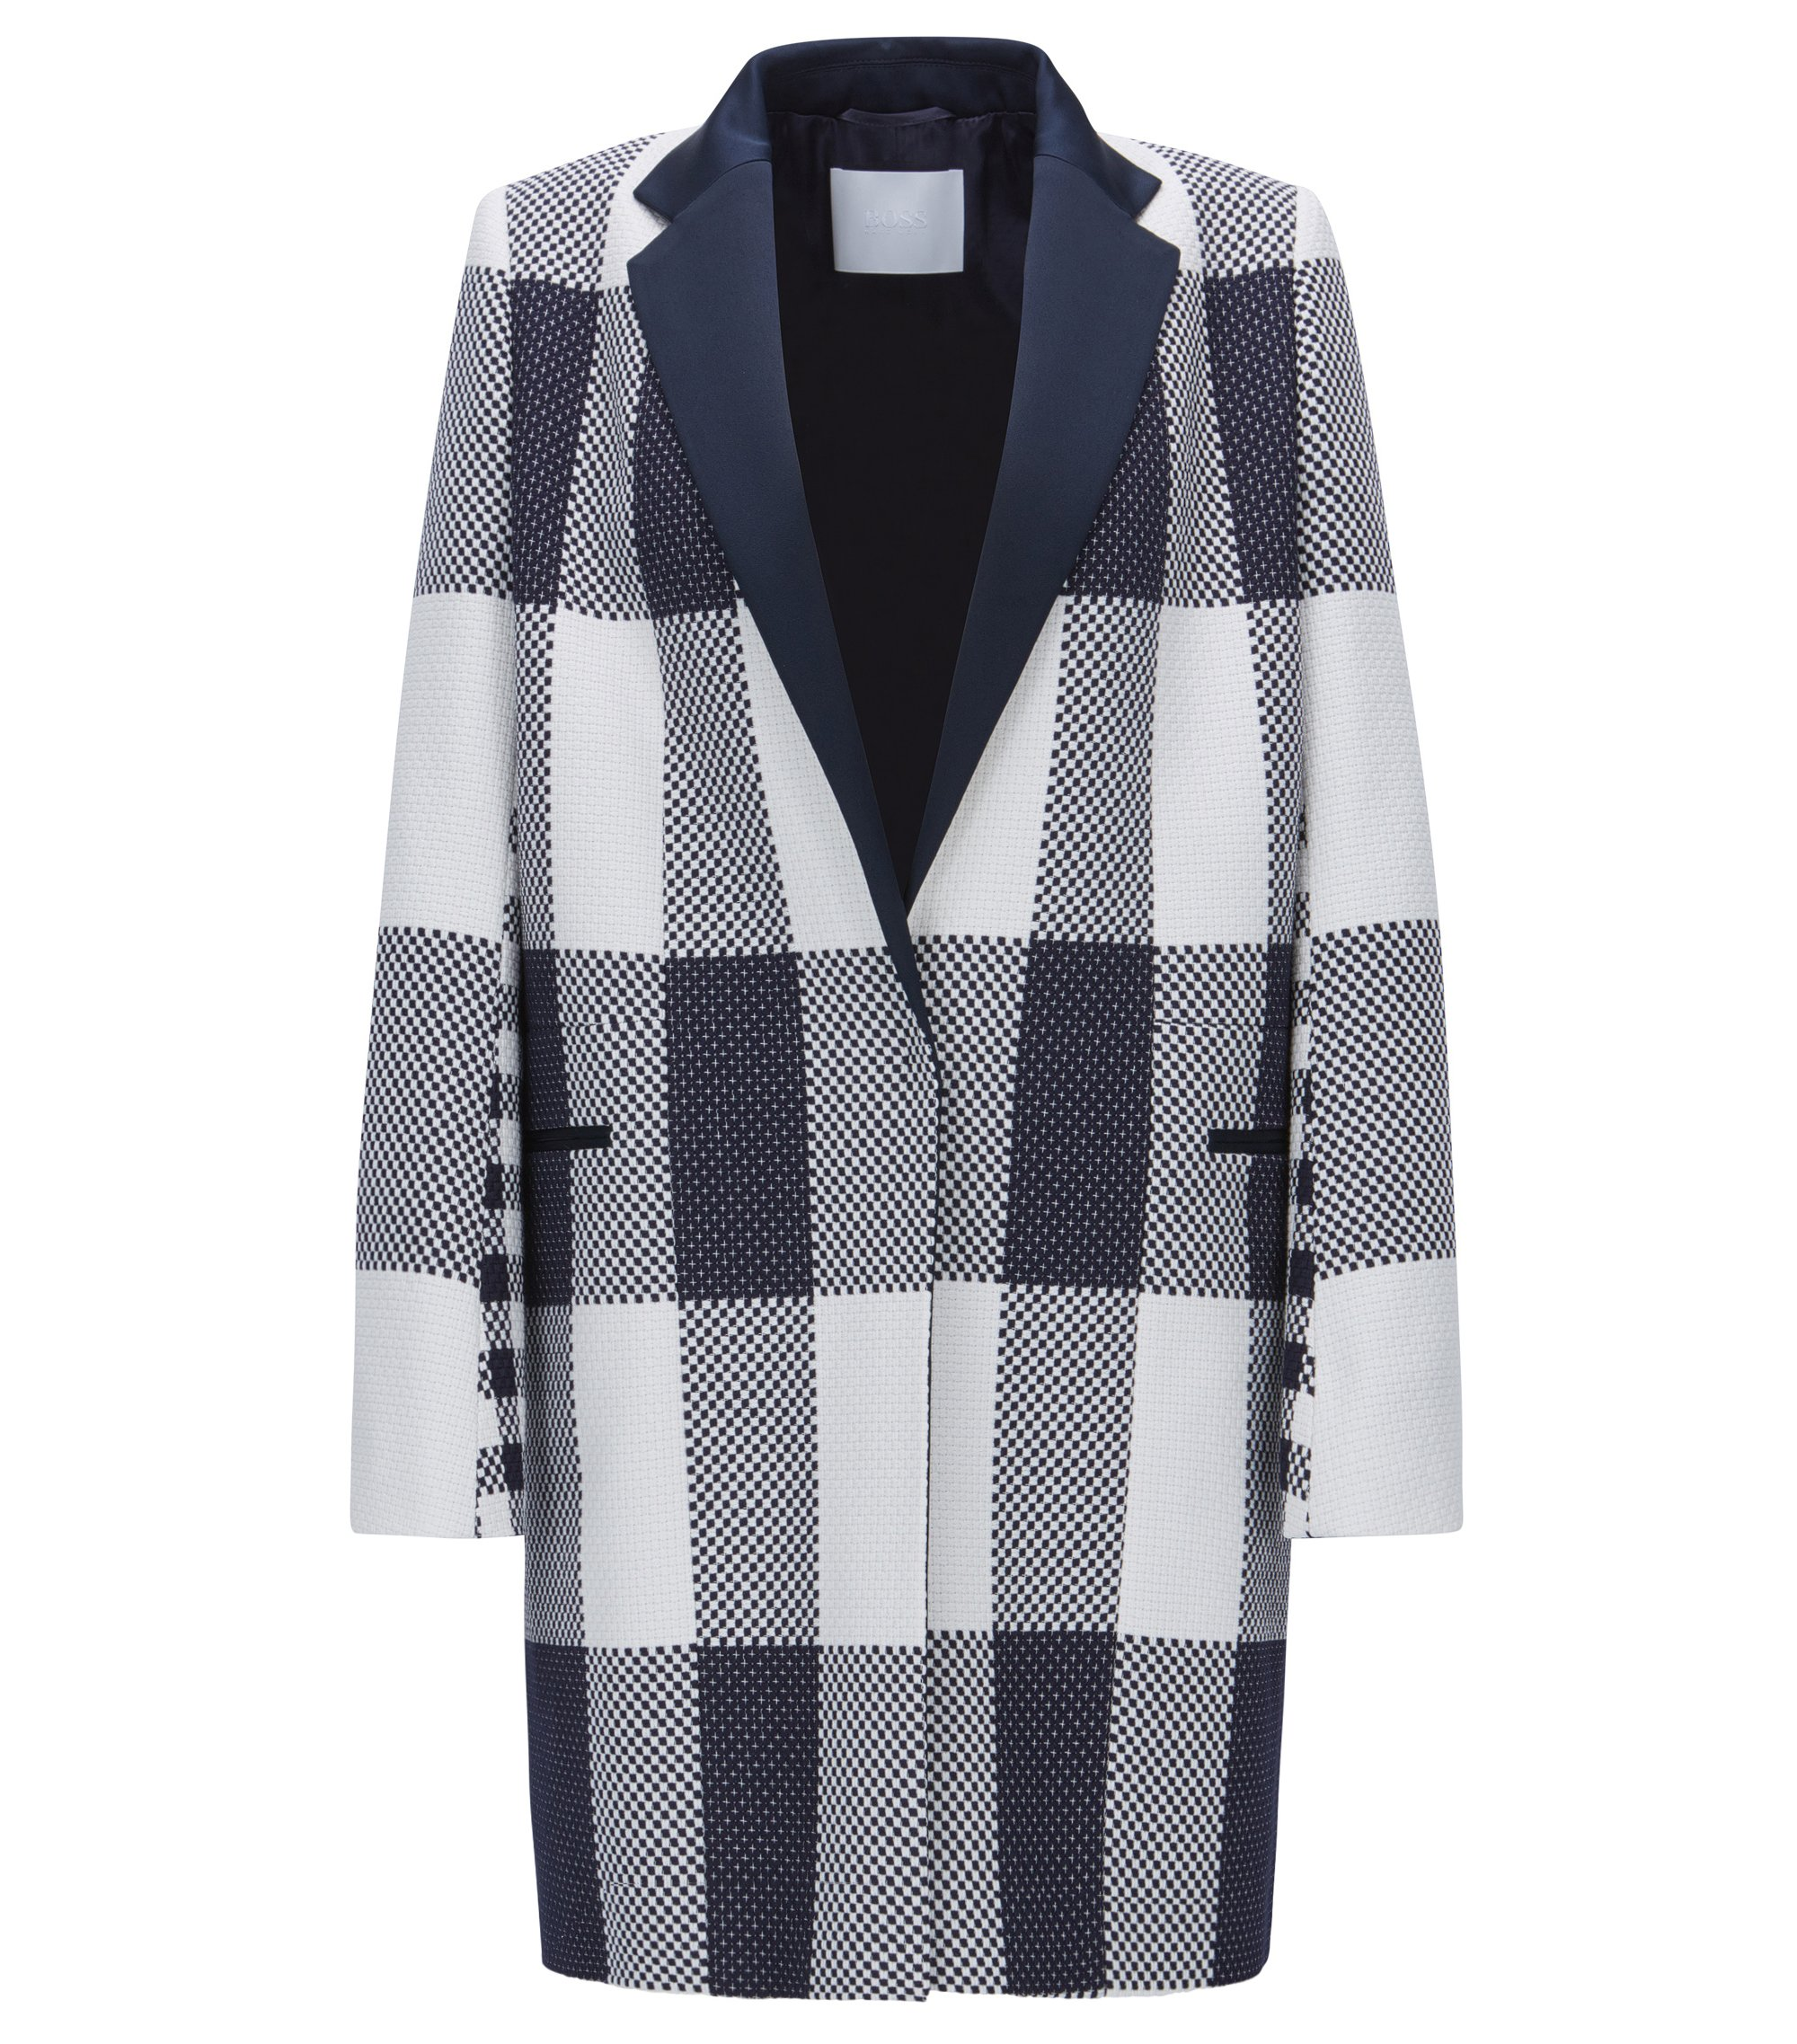 Checked relaxed-fit coat in cotton jacquard, Patterned